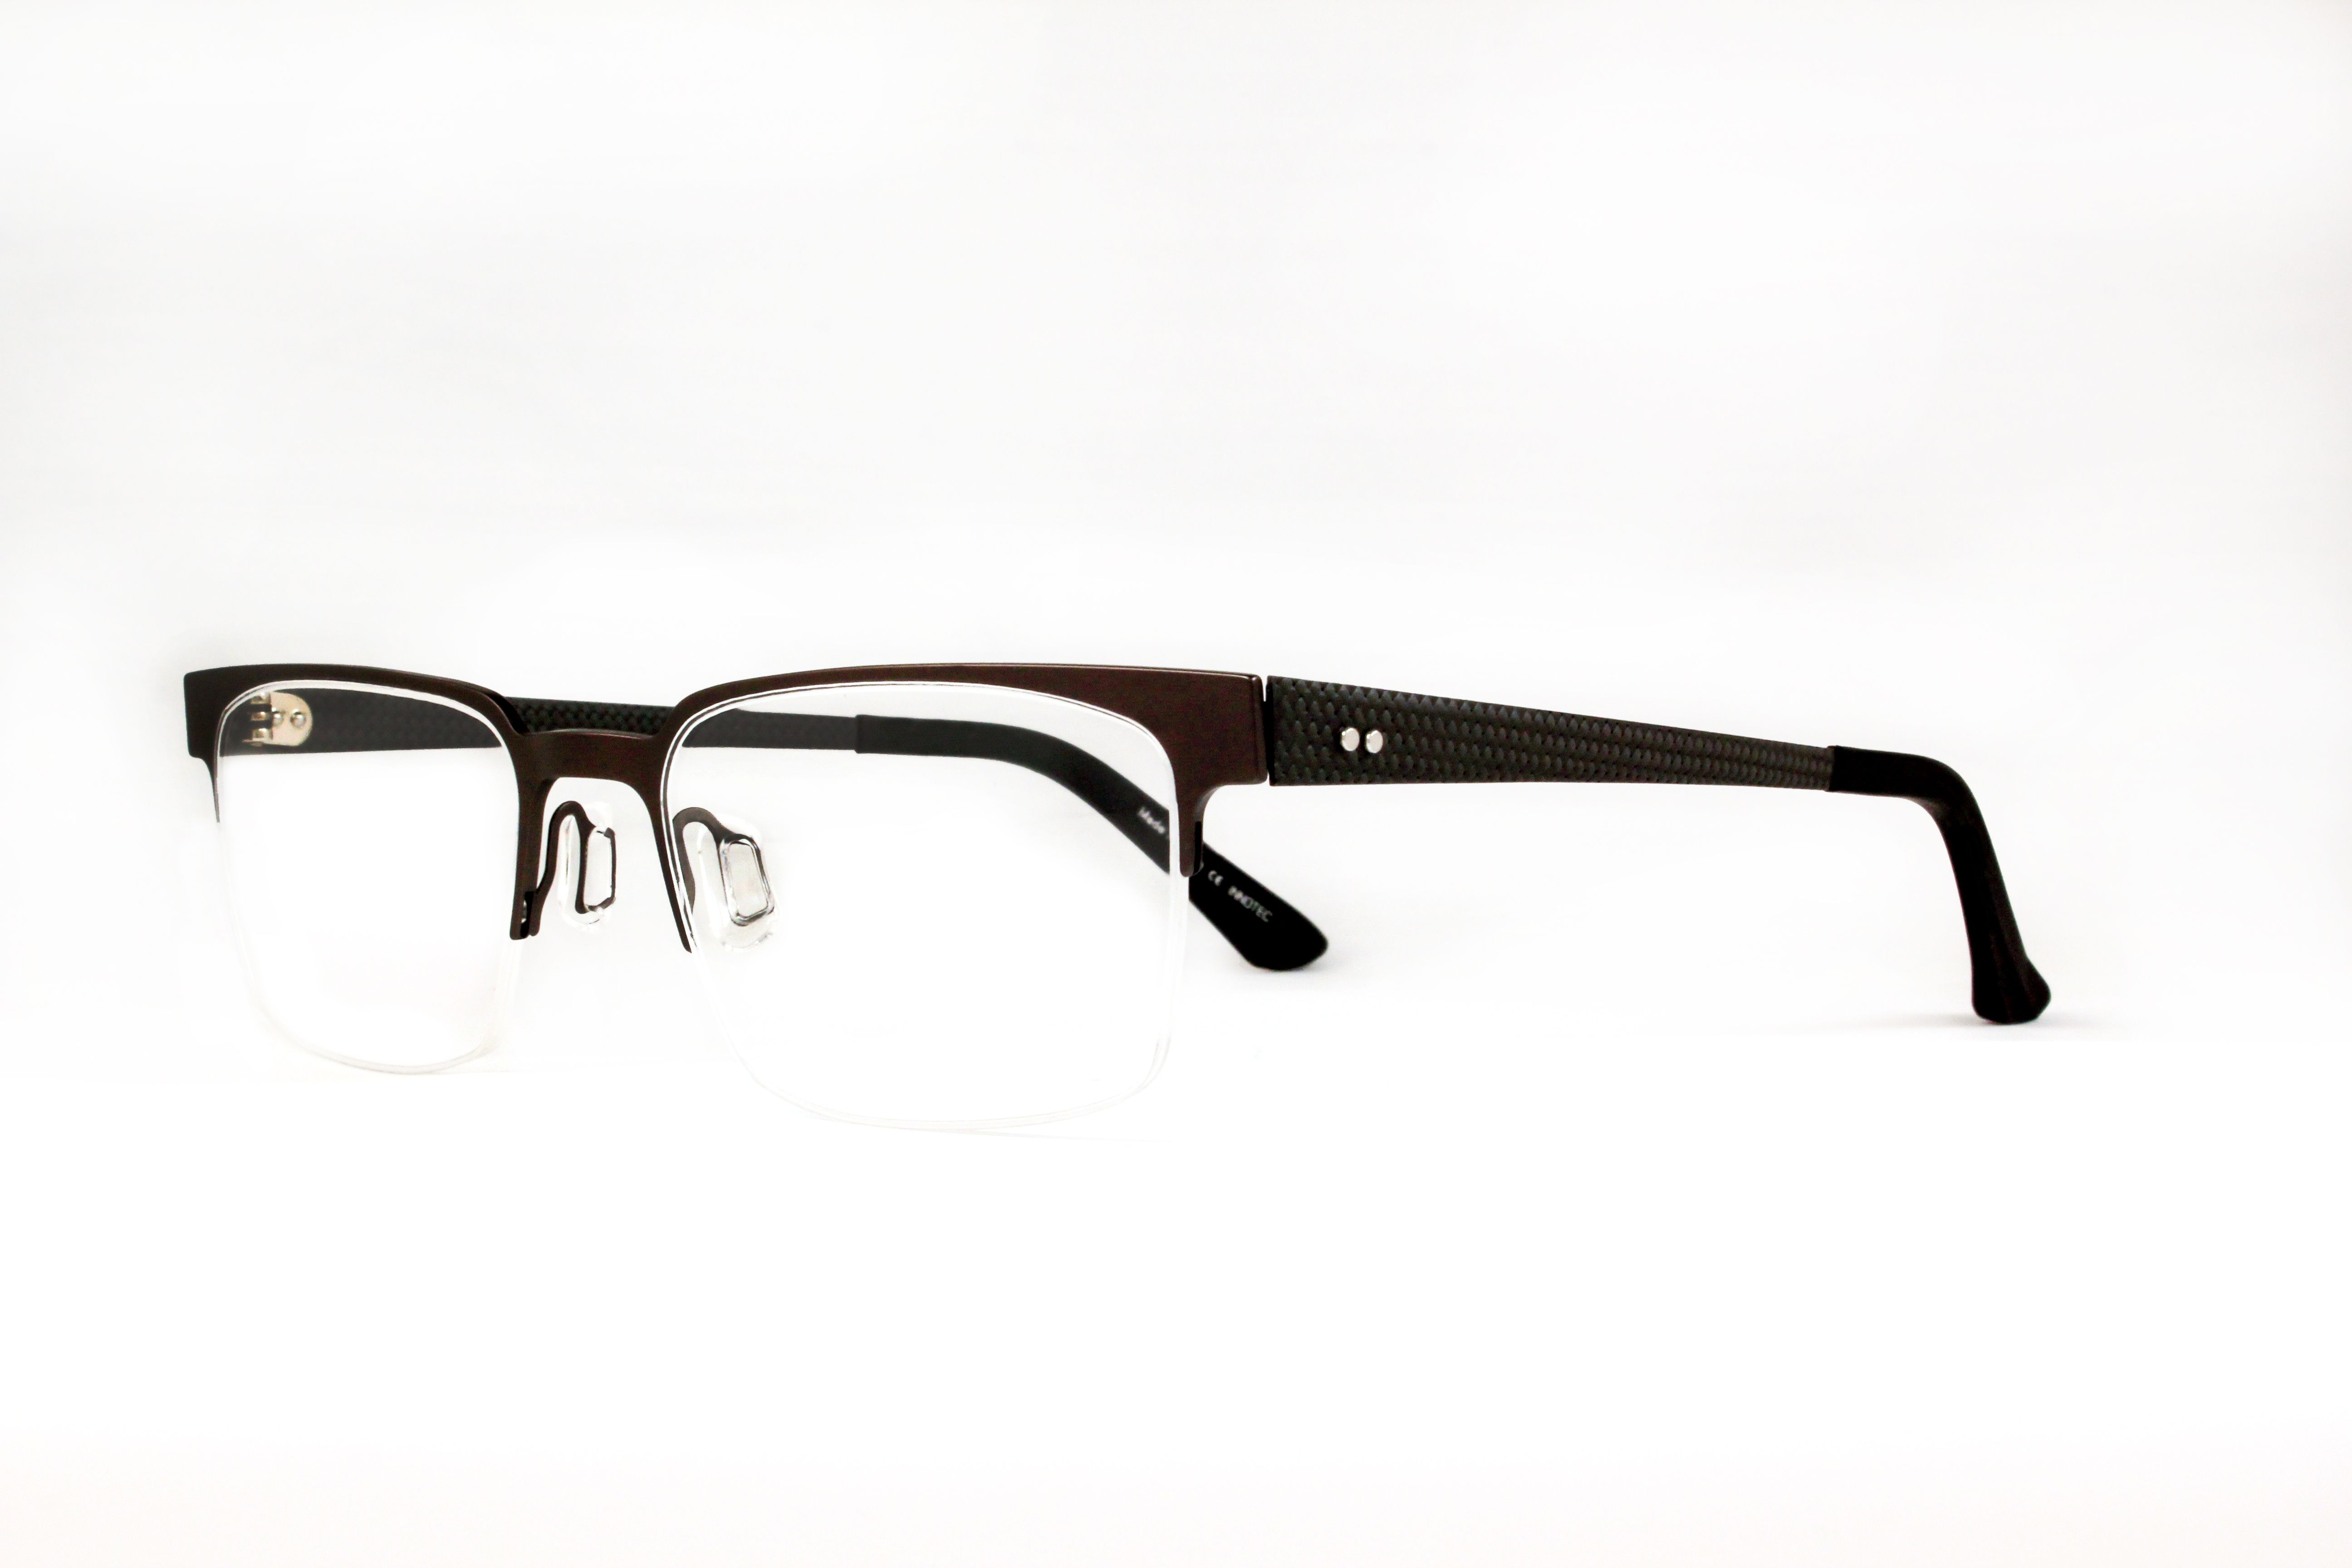 af5ac9e9d09 This pair of men s OGI frames is classic